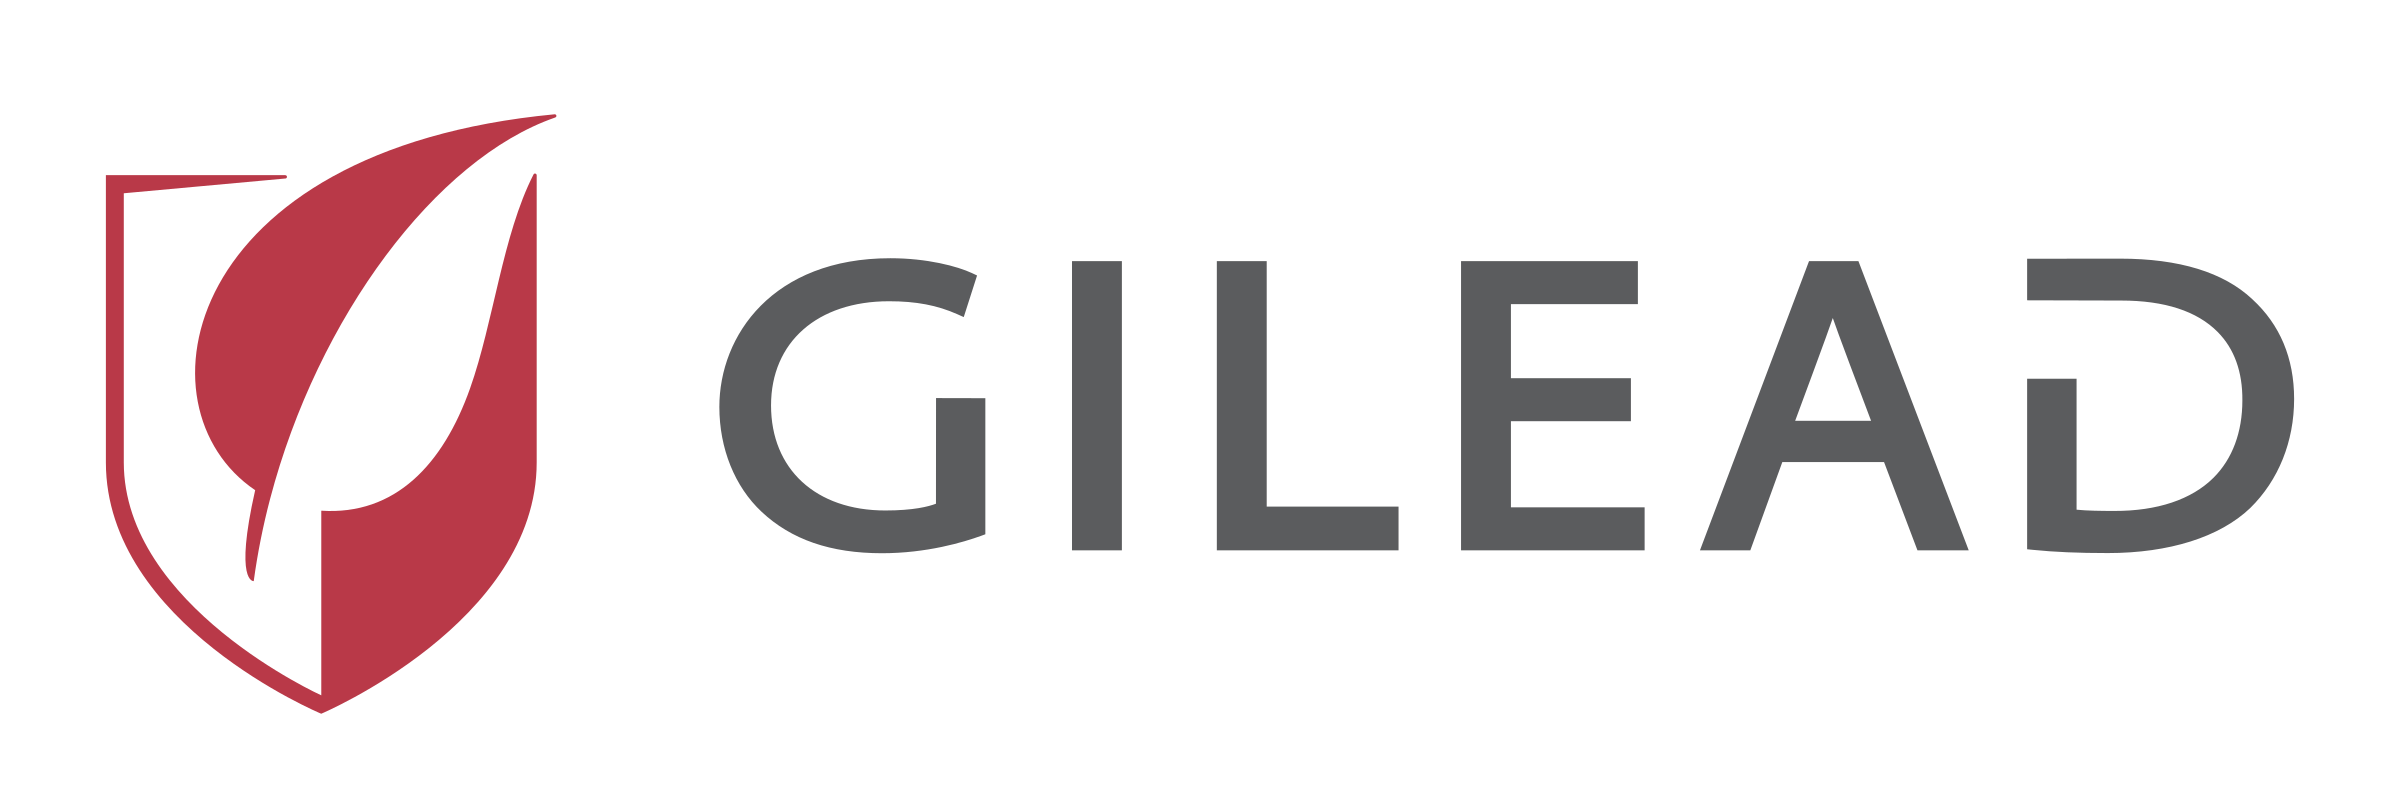 gilead-2-logo-png-transparent - from the web - cropped.png